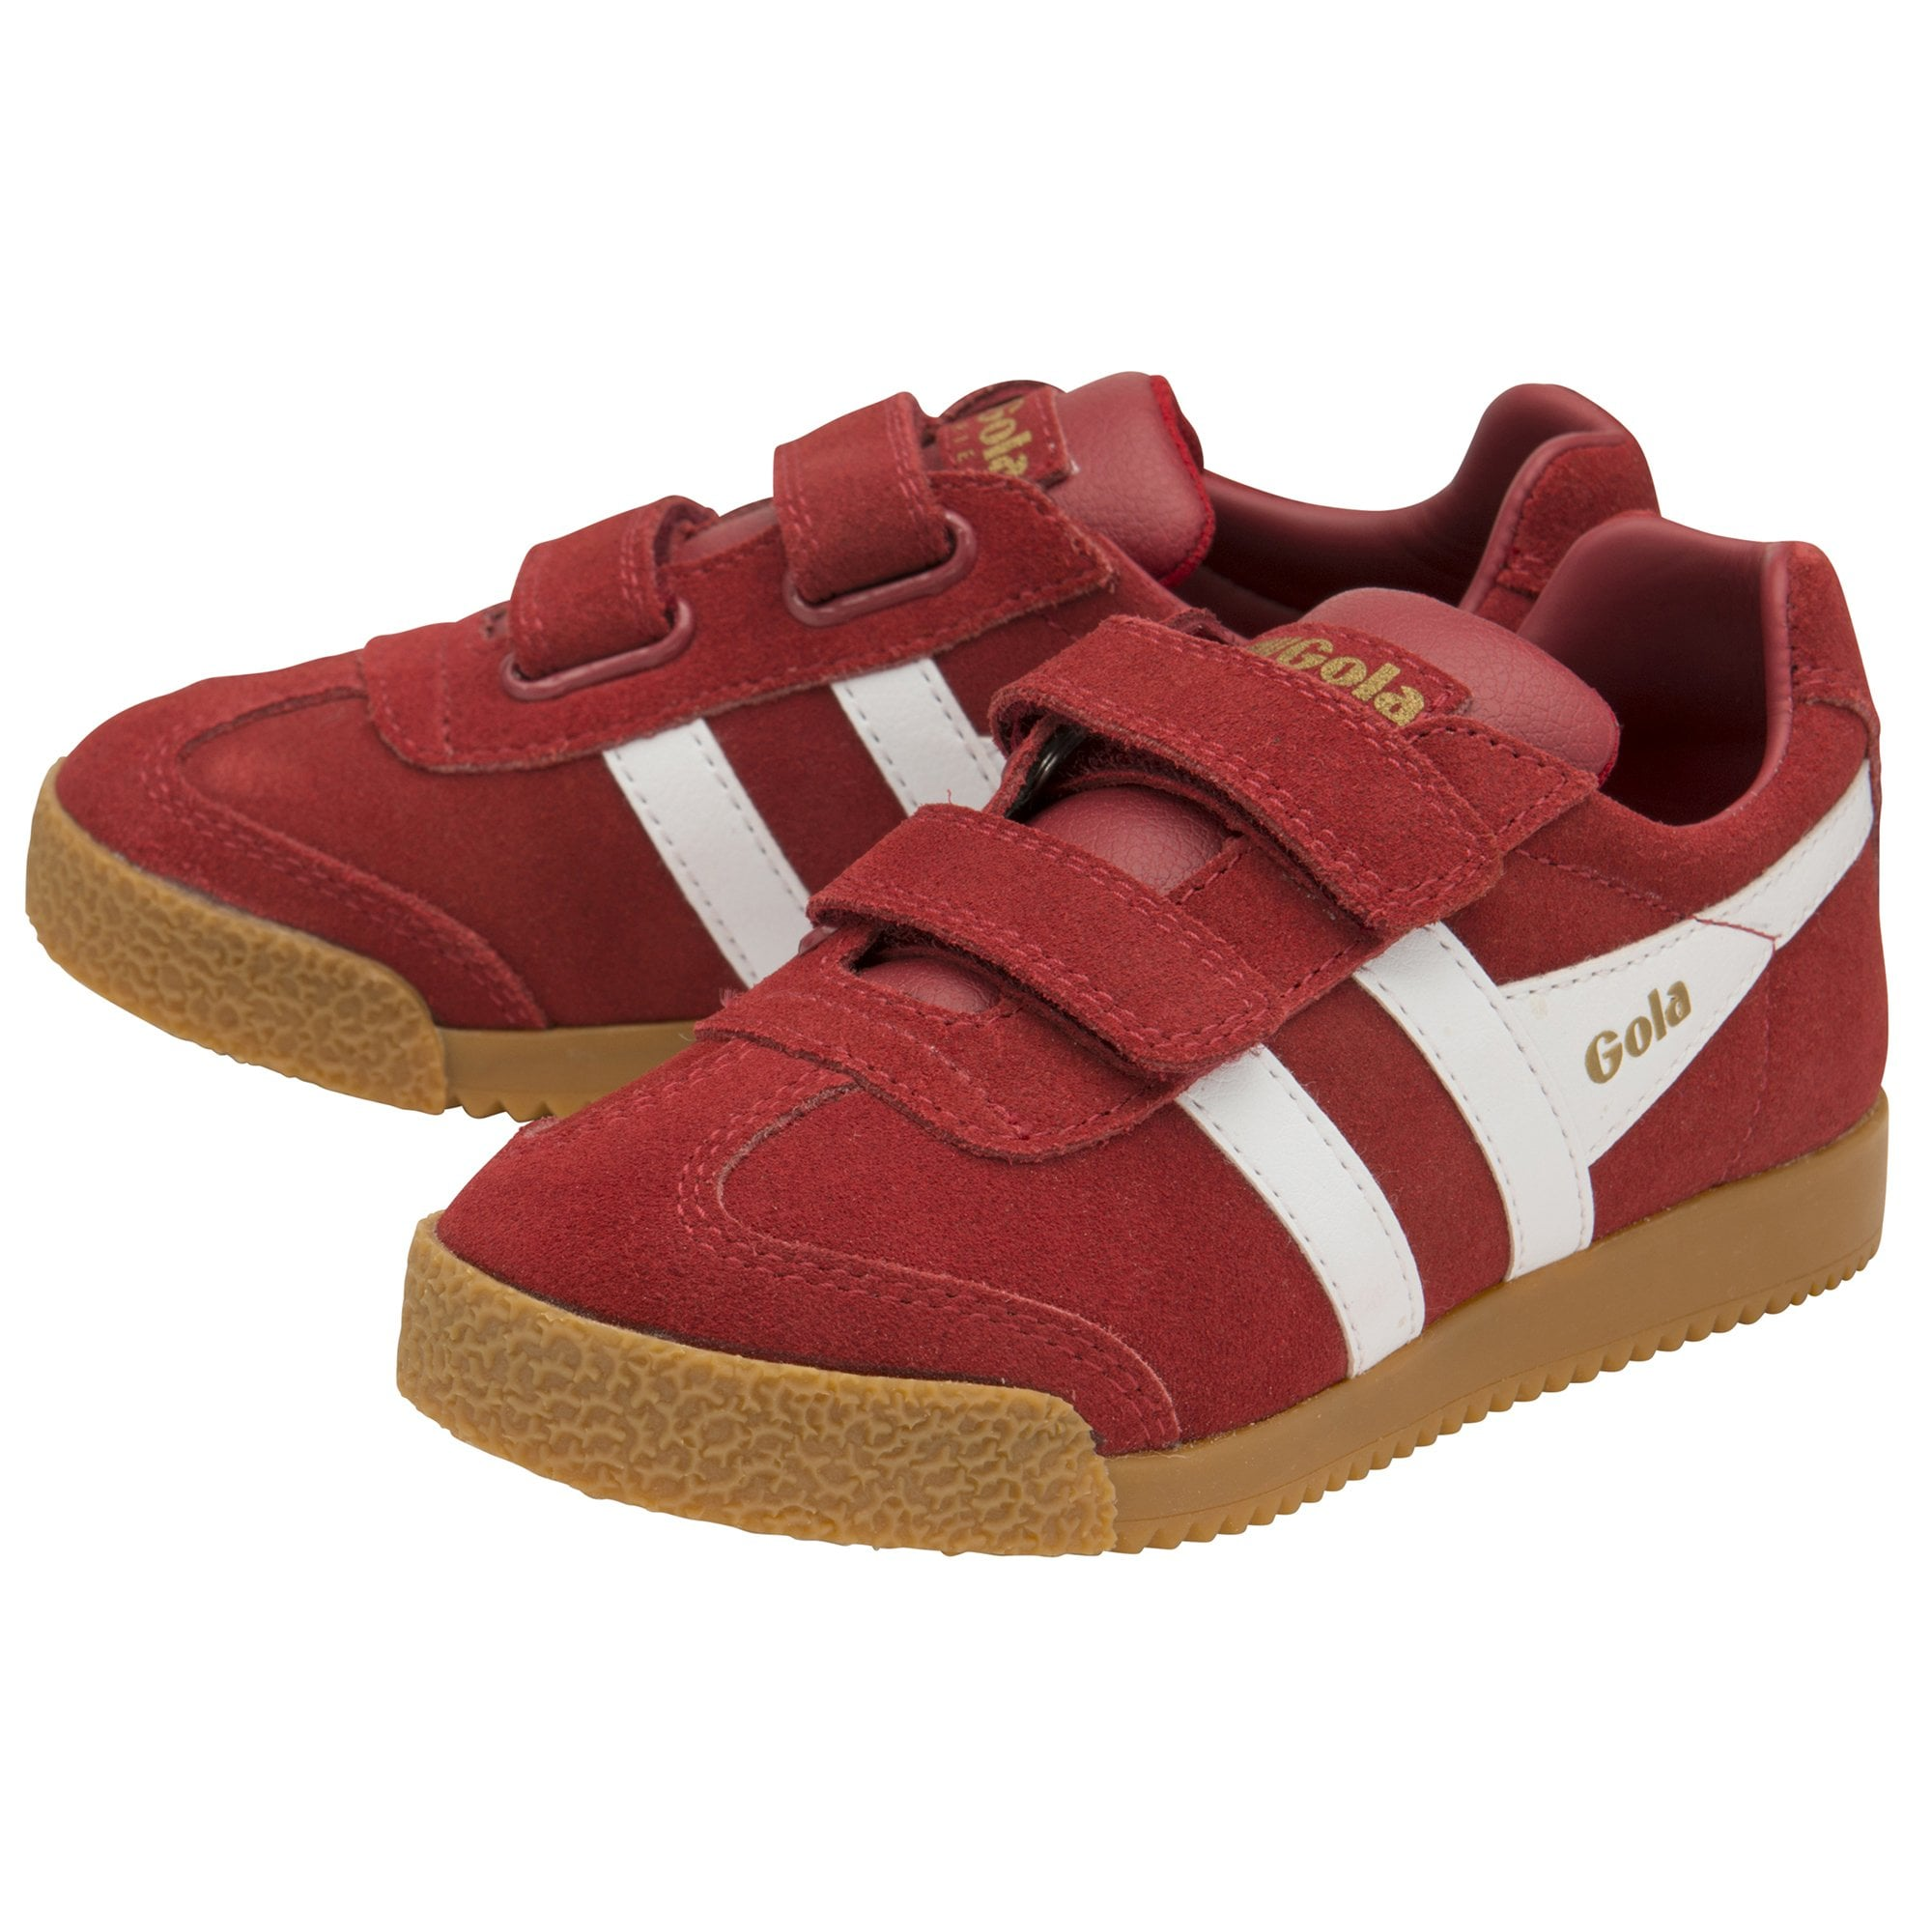 Kids Harrier Strap Sneakers